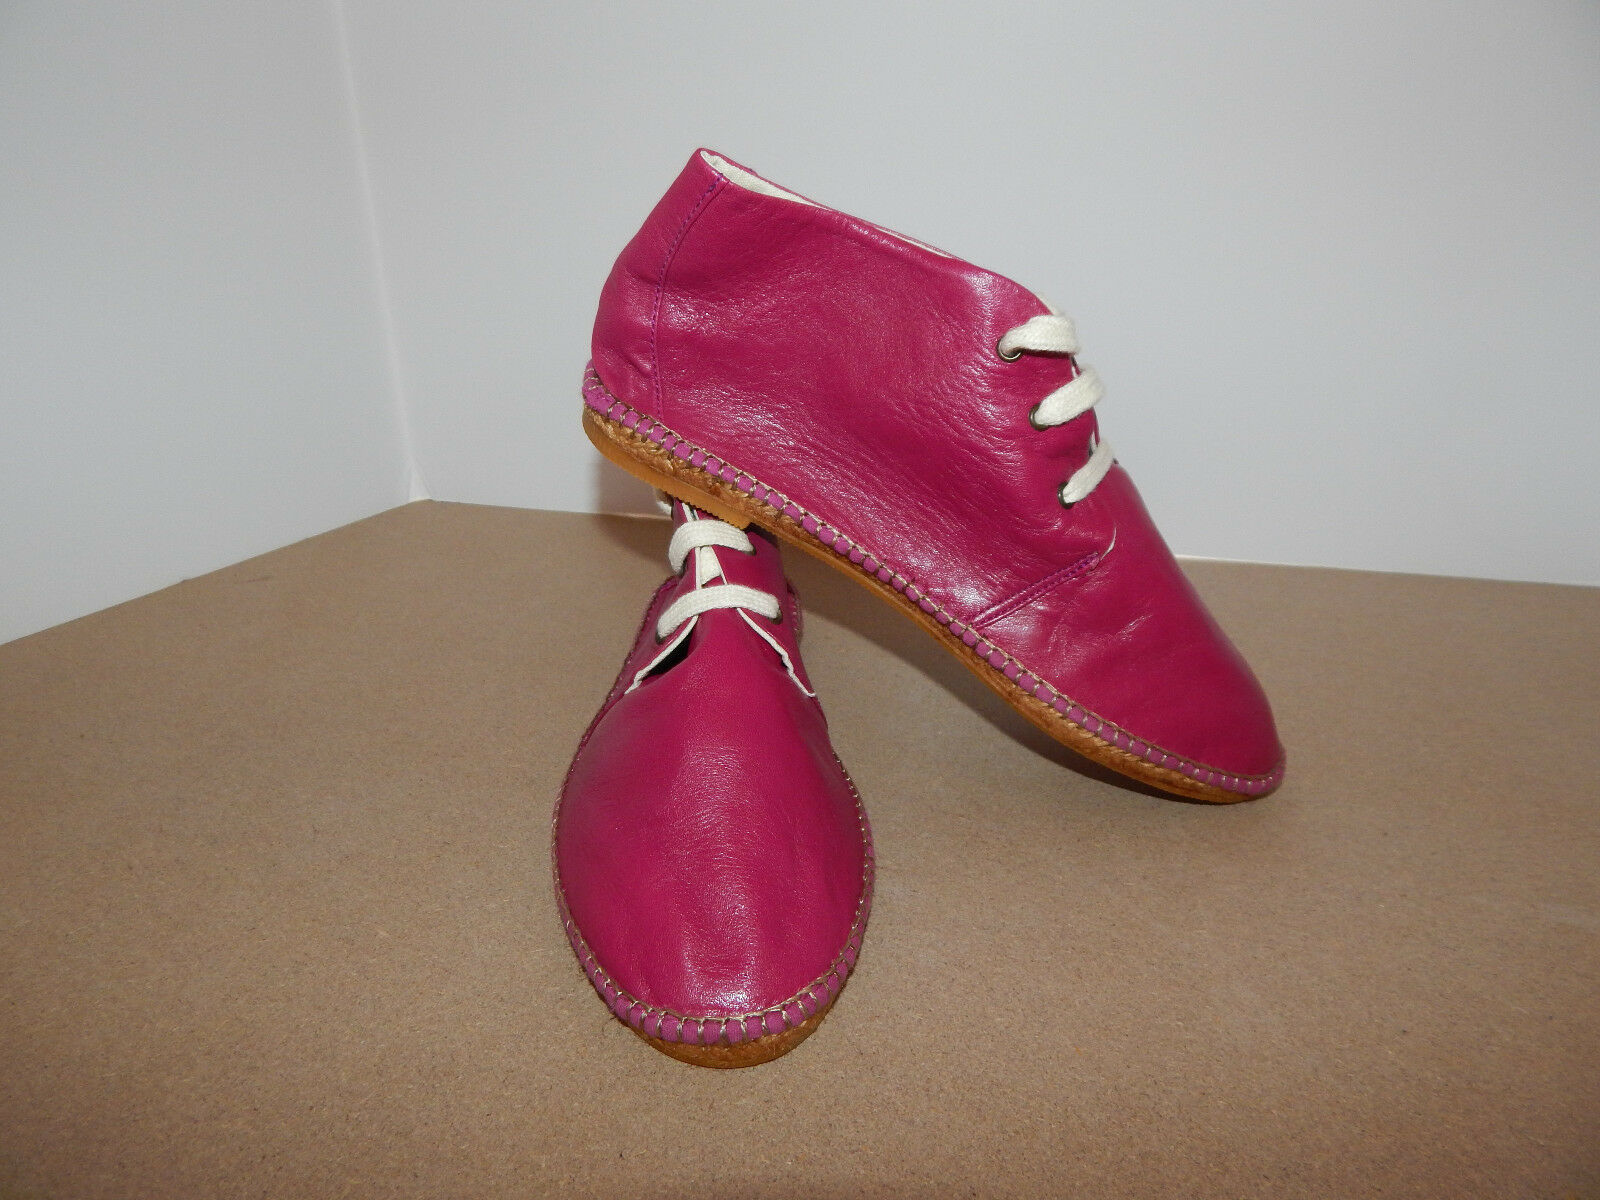 CHOCOLAT BLU SHOES FLATS FUSHIA PINK LEATHER ANKLE BOOTIE STRING TIE 10